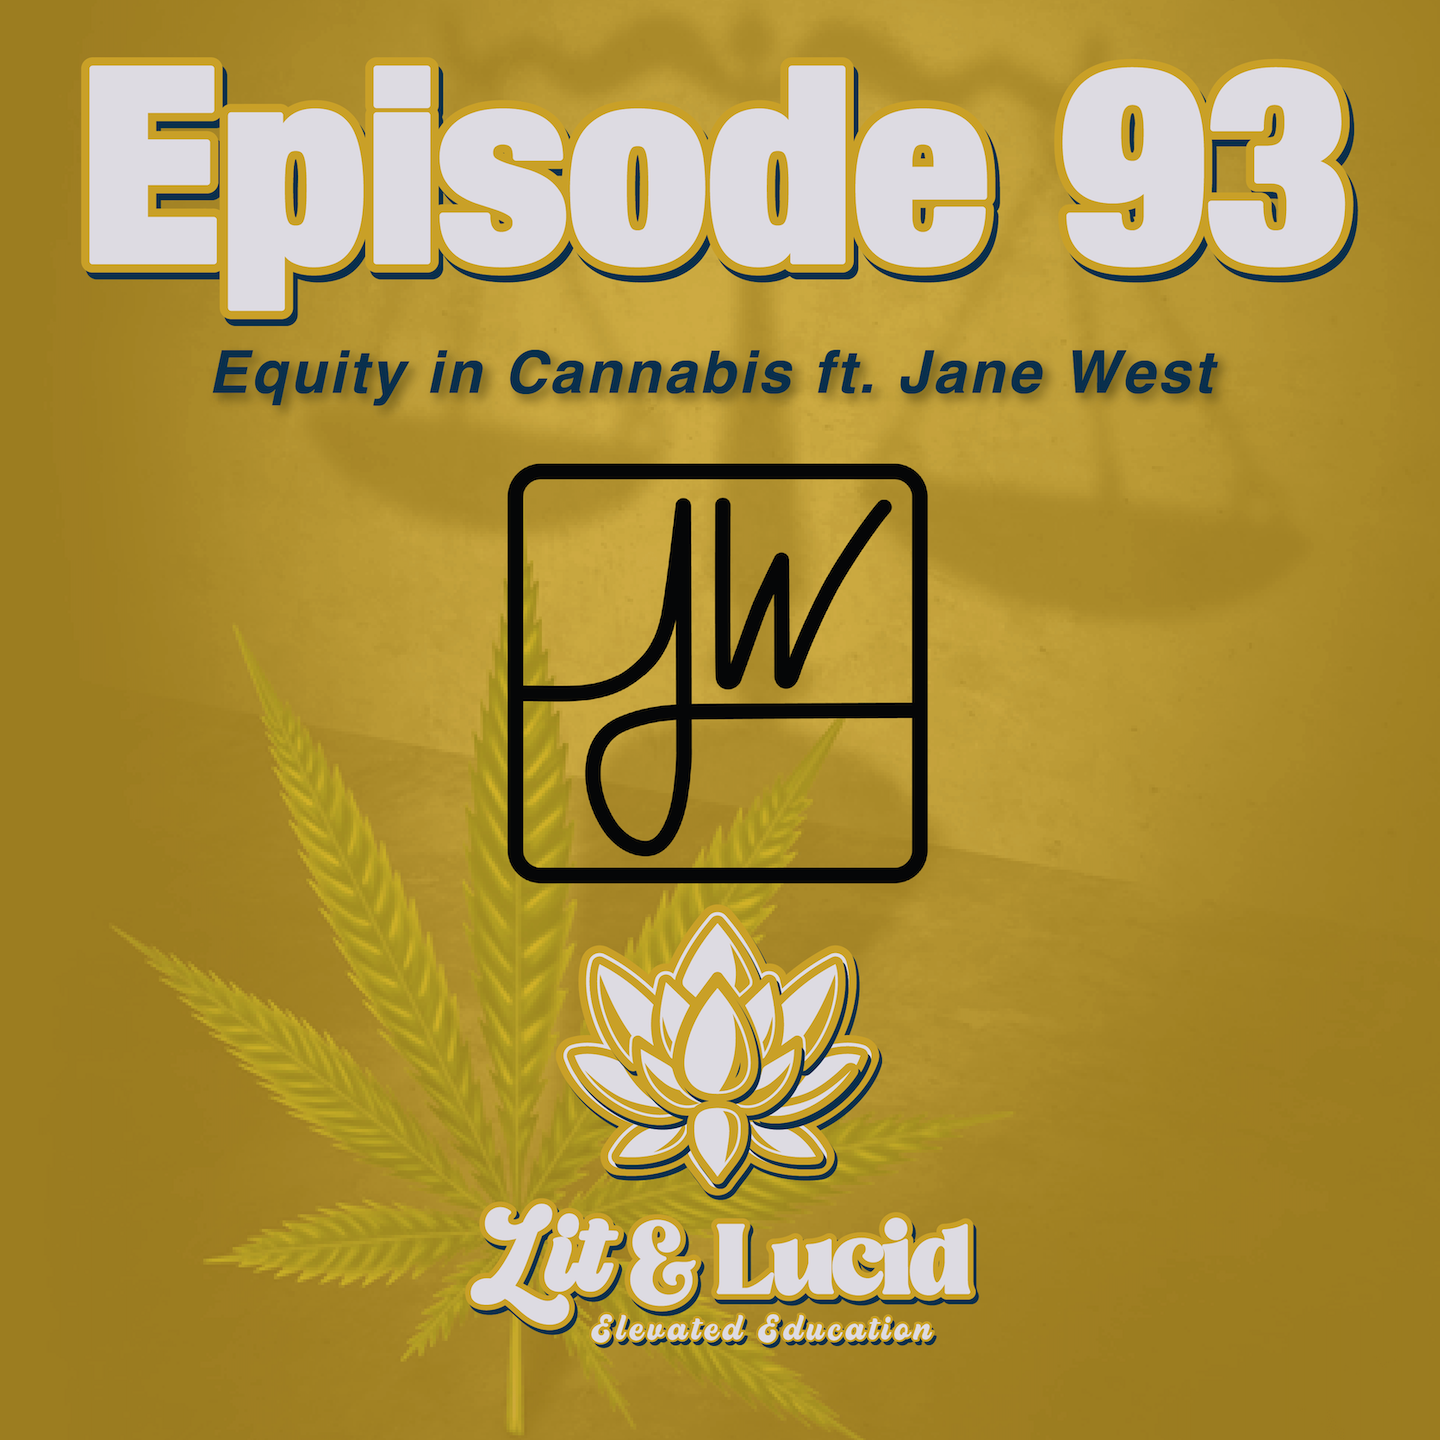 Equity in Cannabis